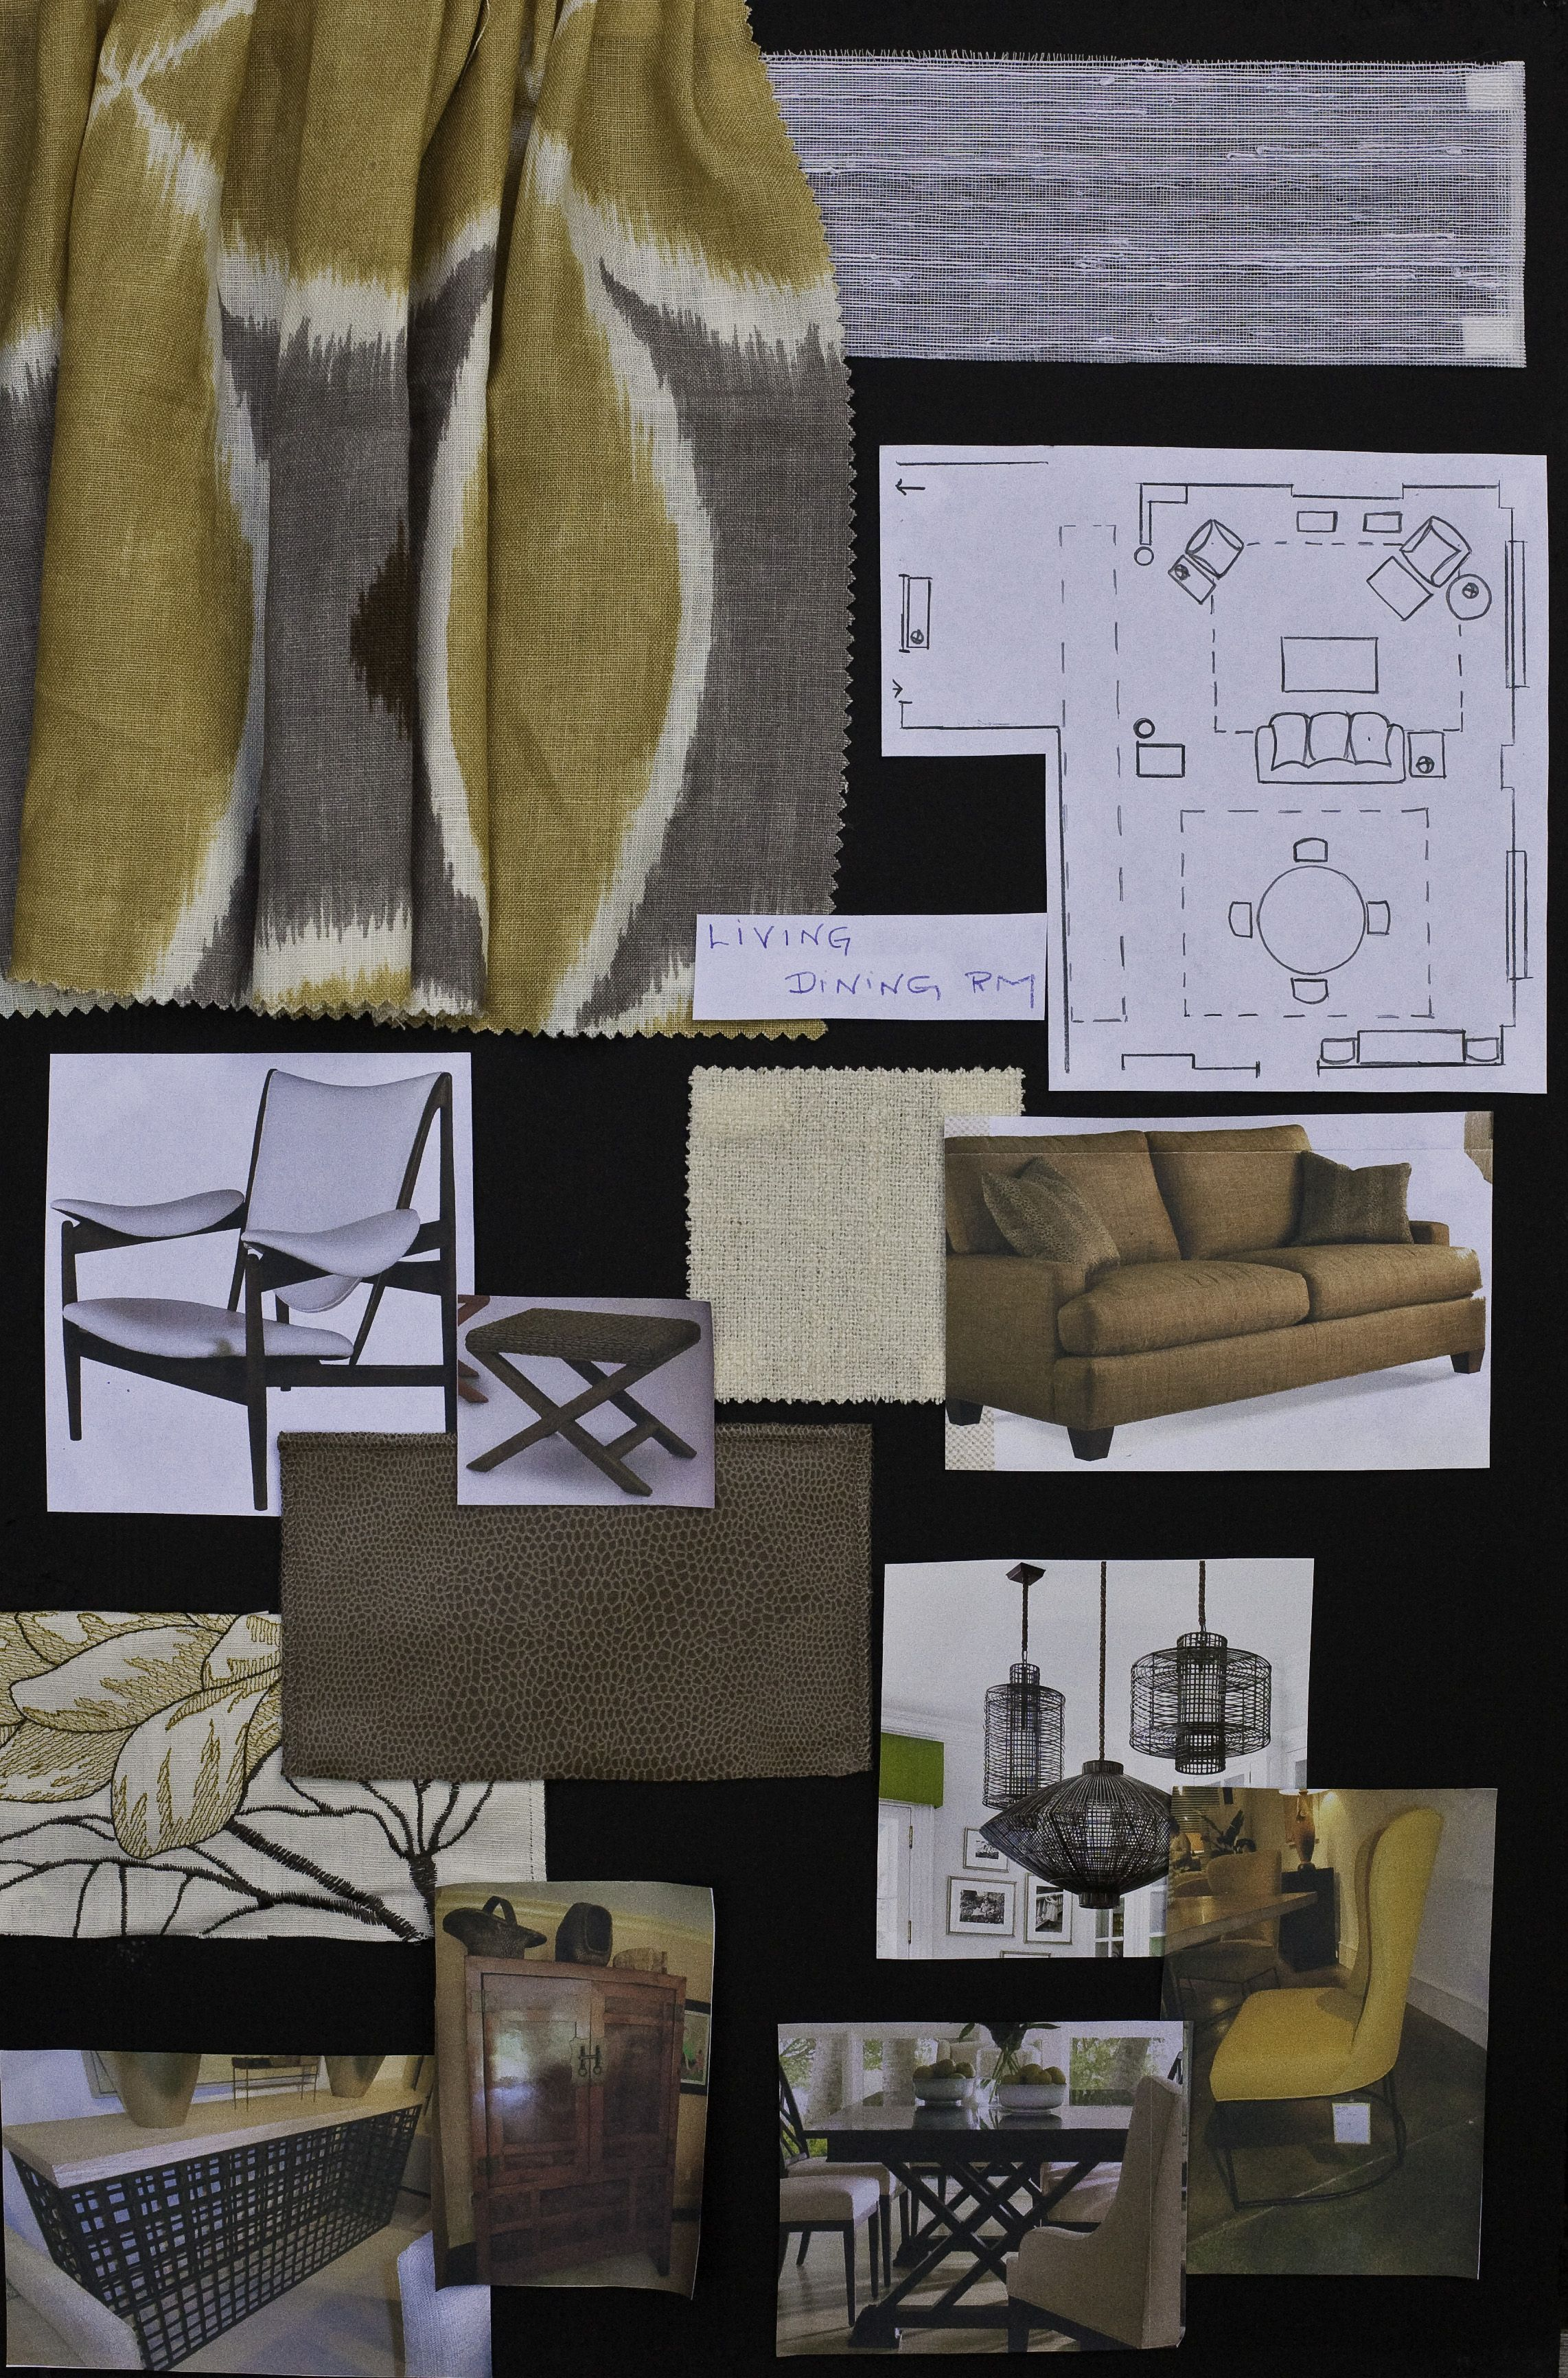 Living And Dining Room Design Presentation Board For NYC Client Terri Reilly